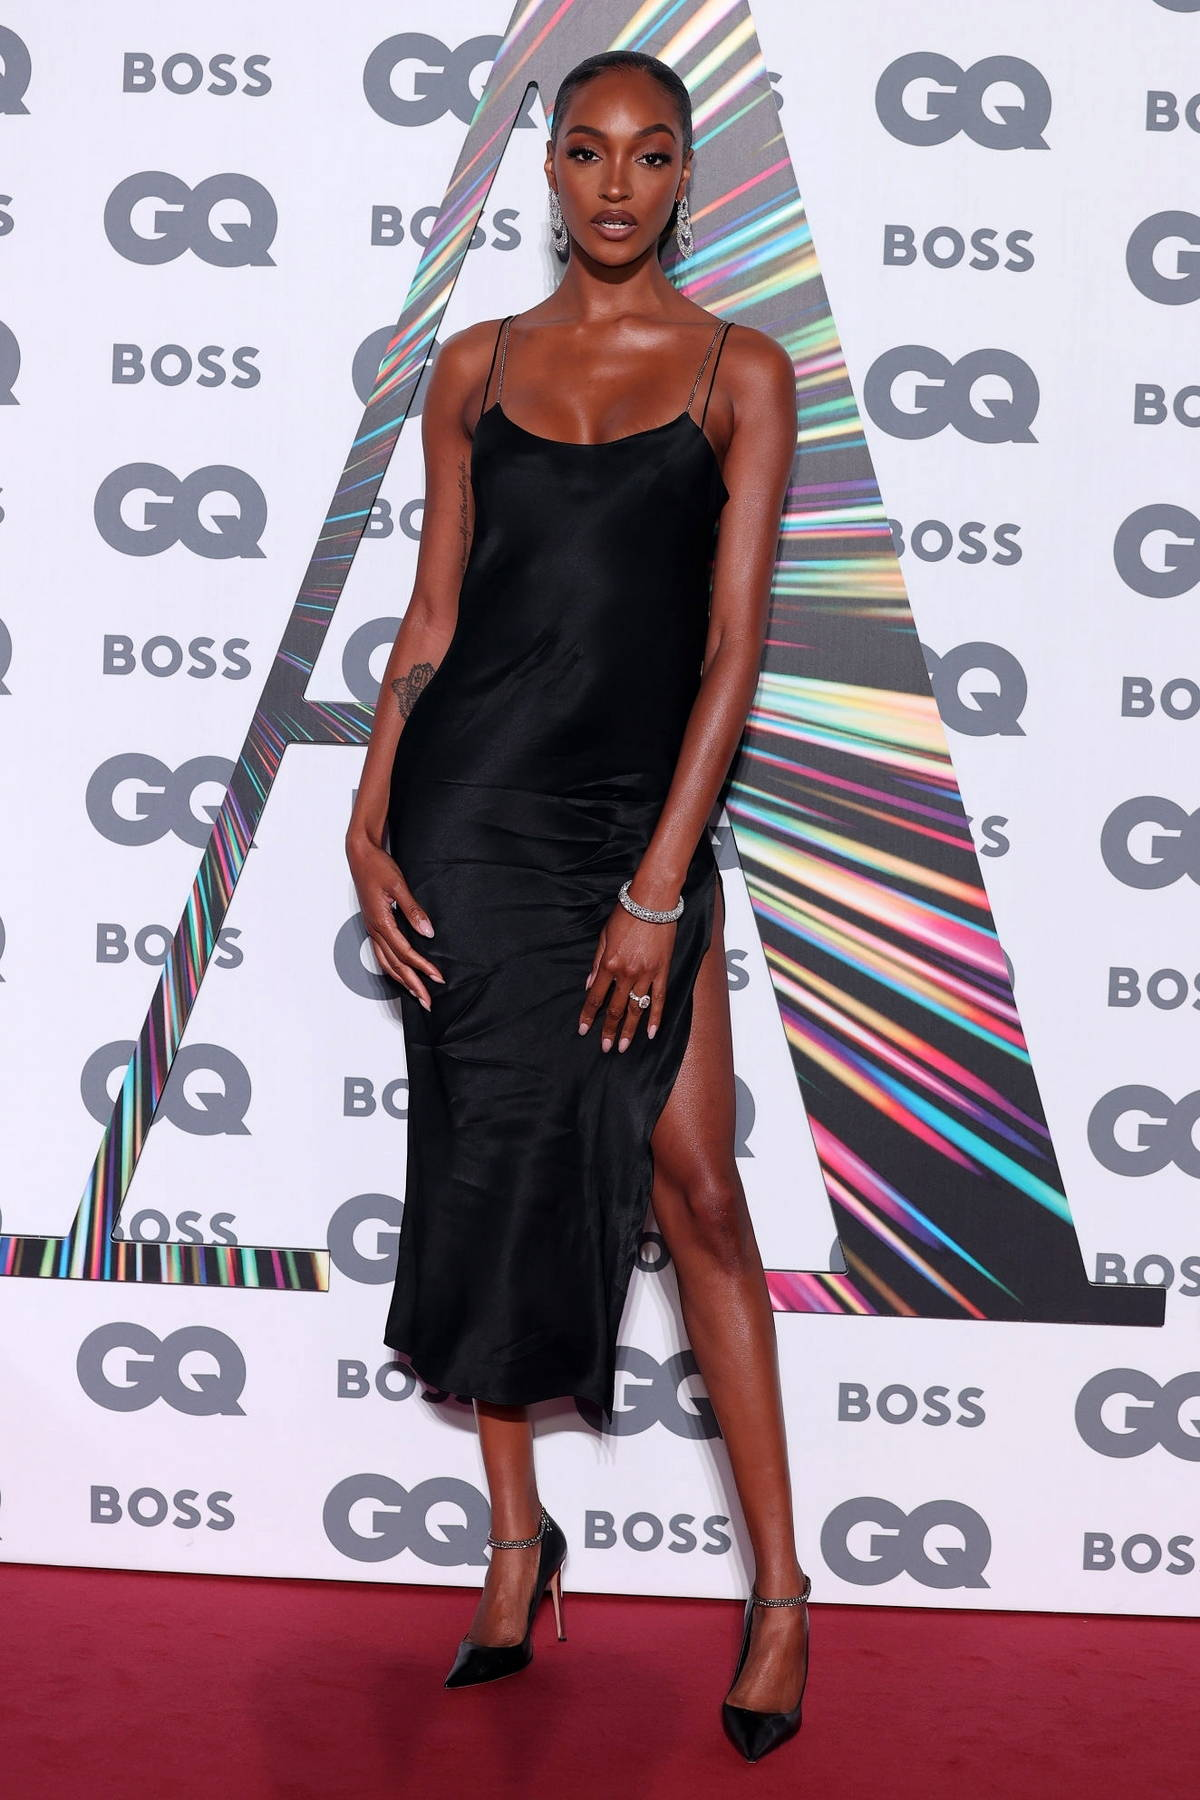 Jourdan Dunn attends the GQ Men Of The Year Awards 2021 at the Tate Modern in London, UK